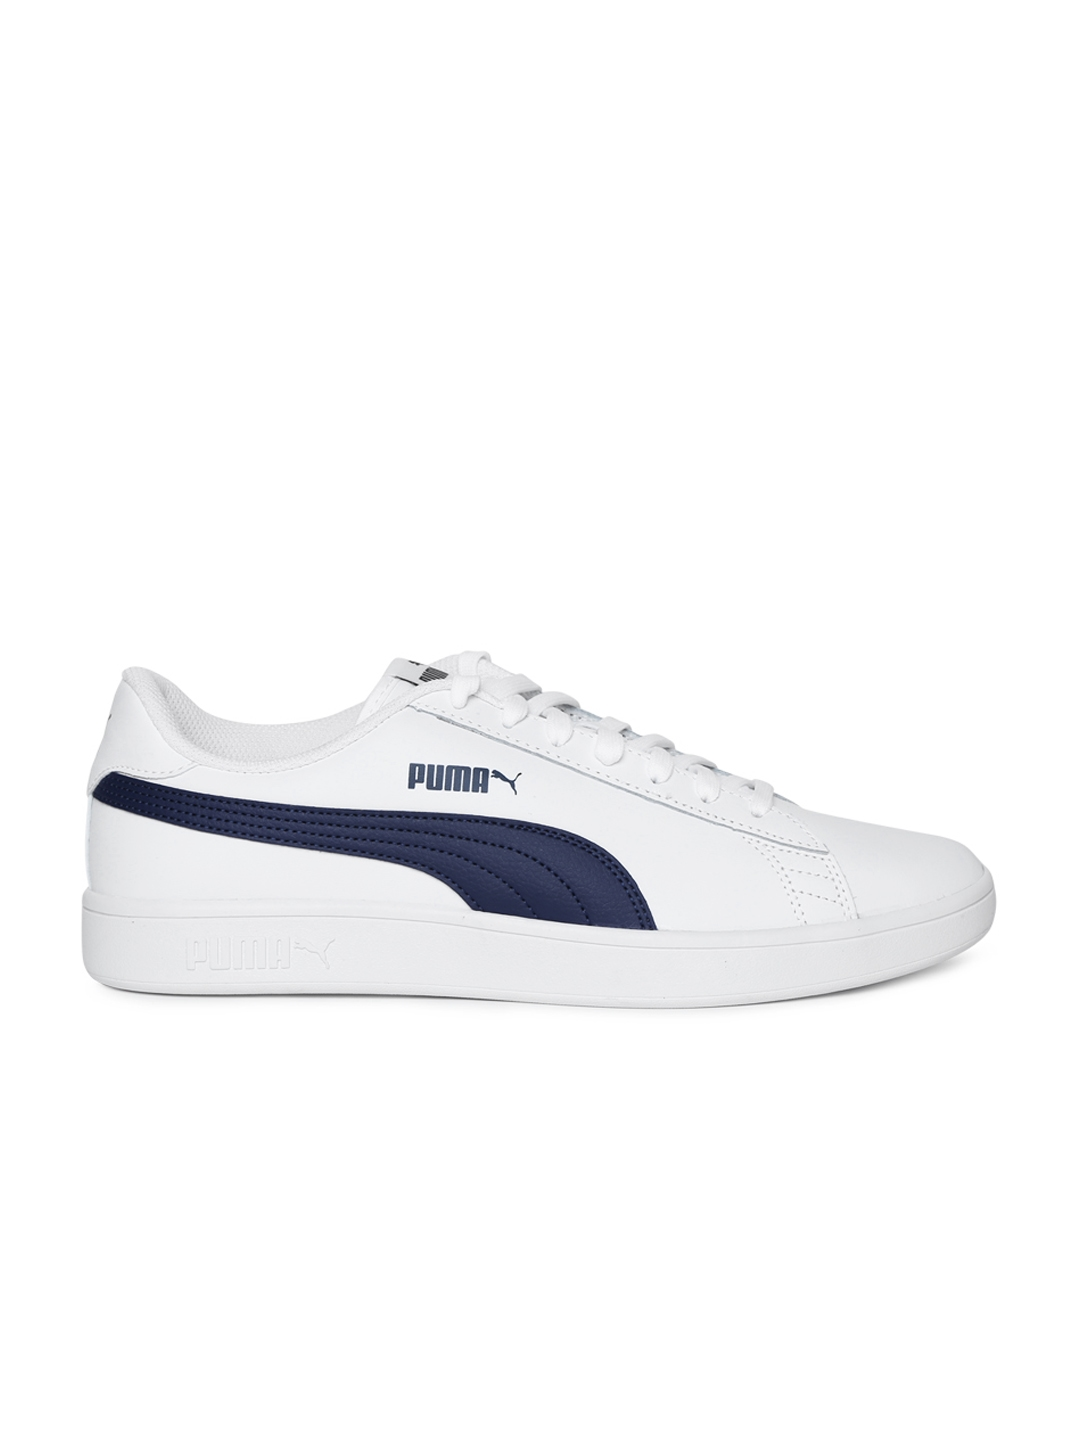 a84200a7263 Buy Puma Men White Smash V2 Leather Sneakers - Casual Shoes for Men ...